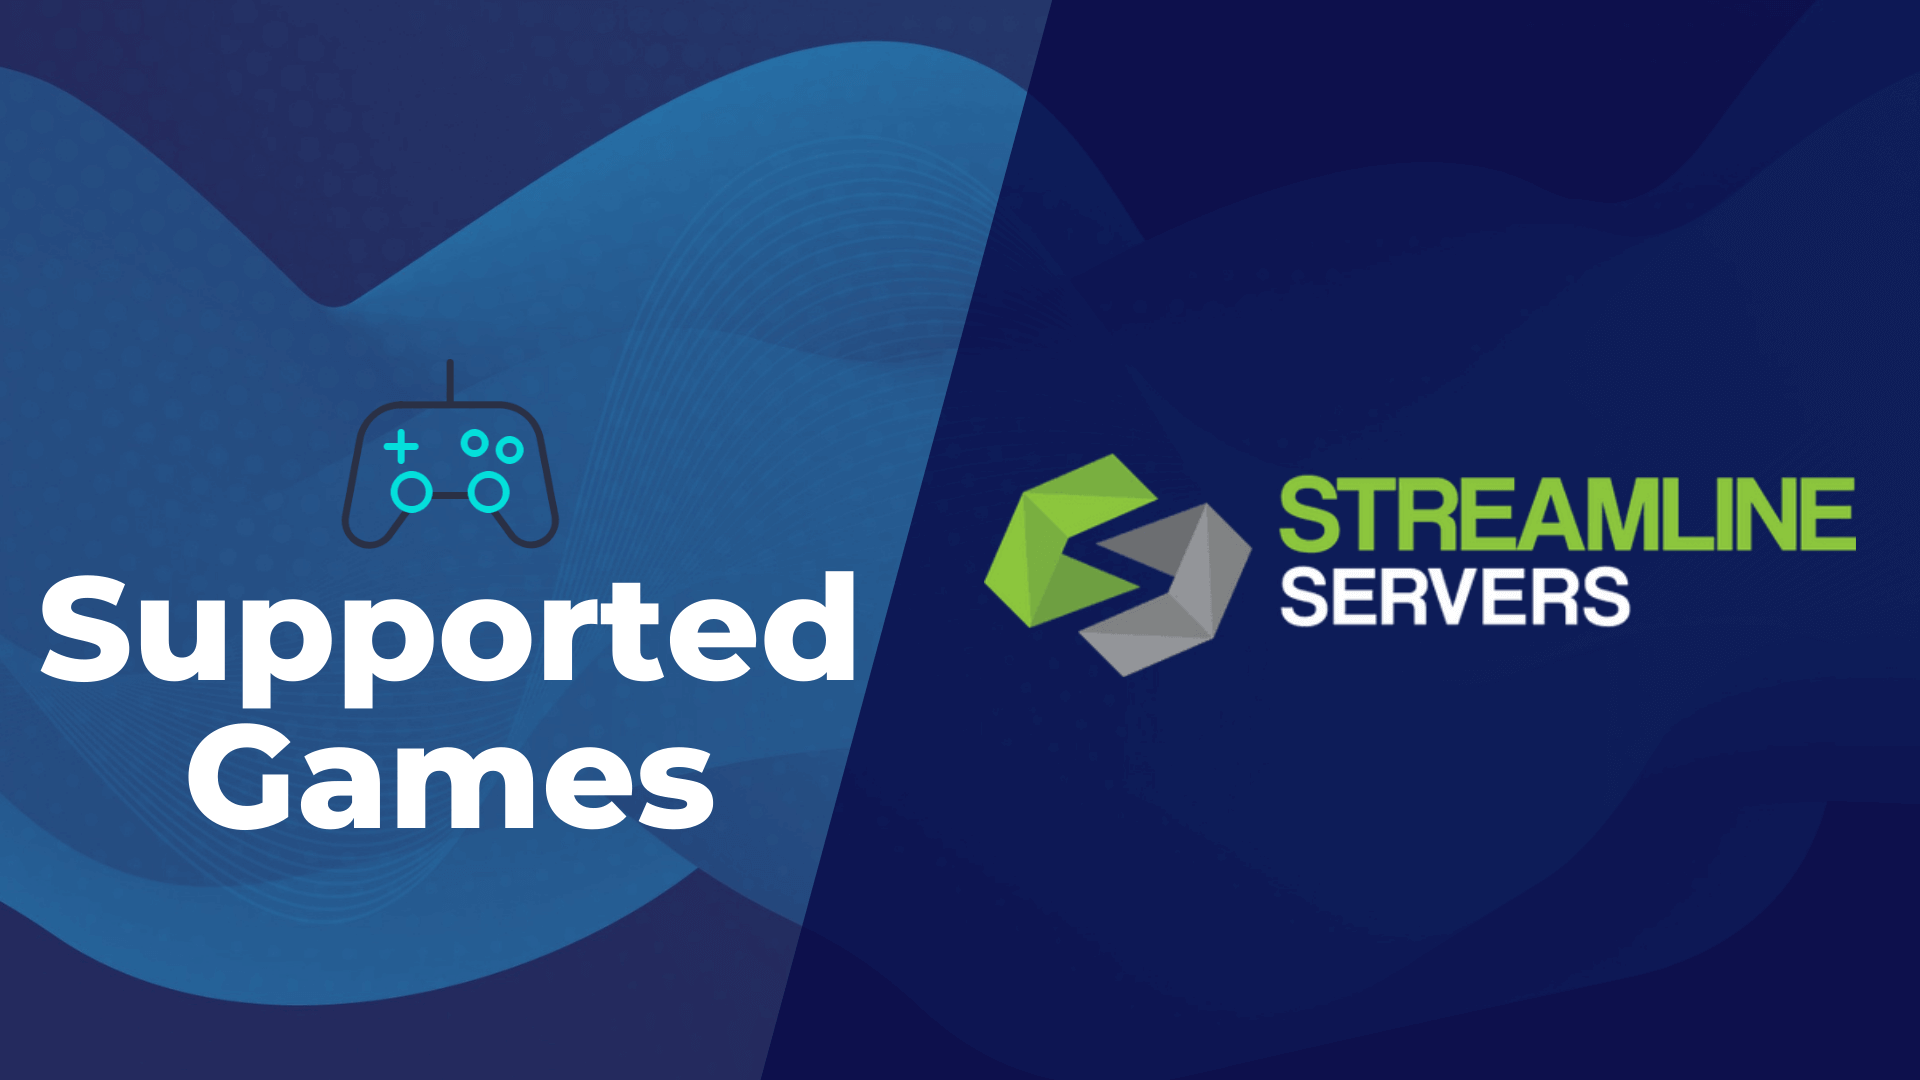 Streamline Servers Supported Games List